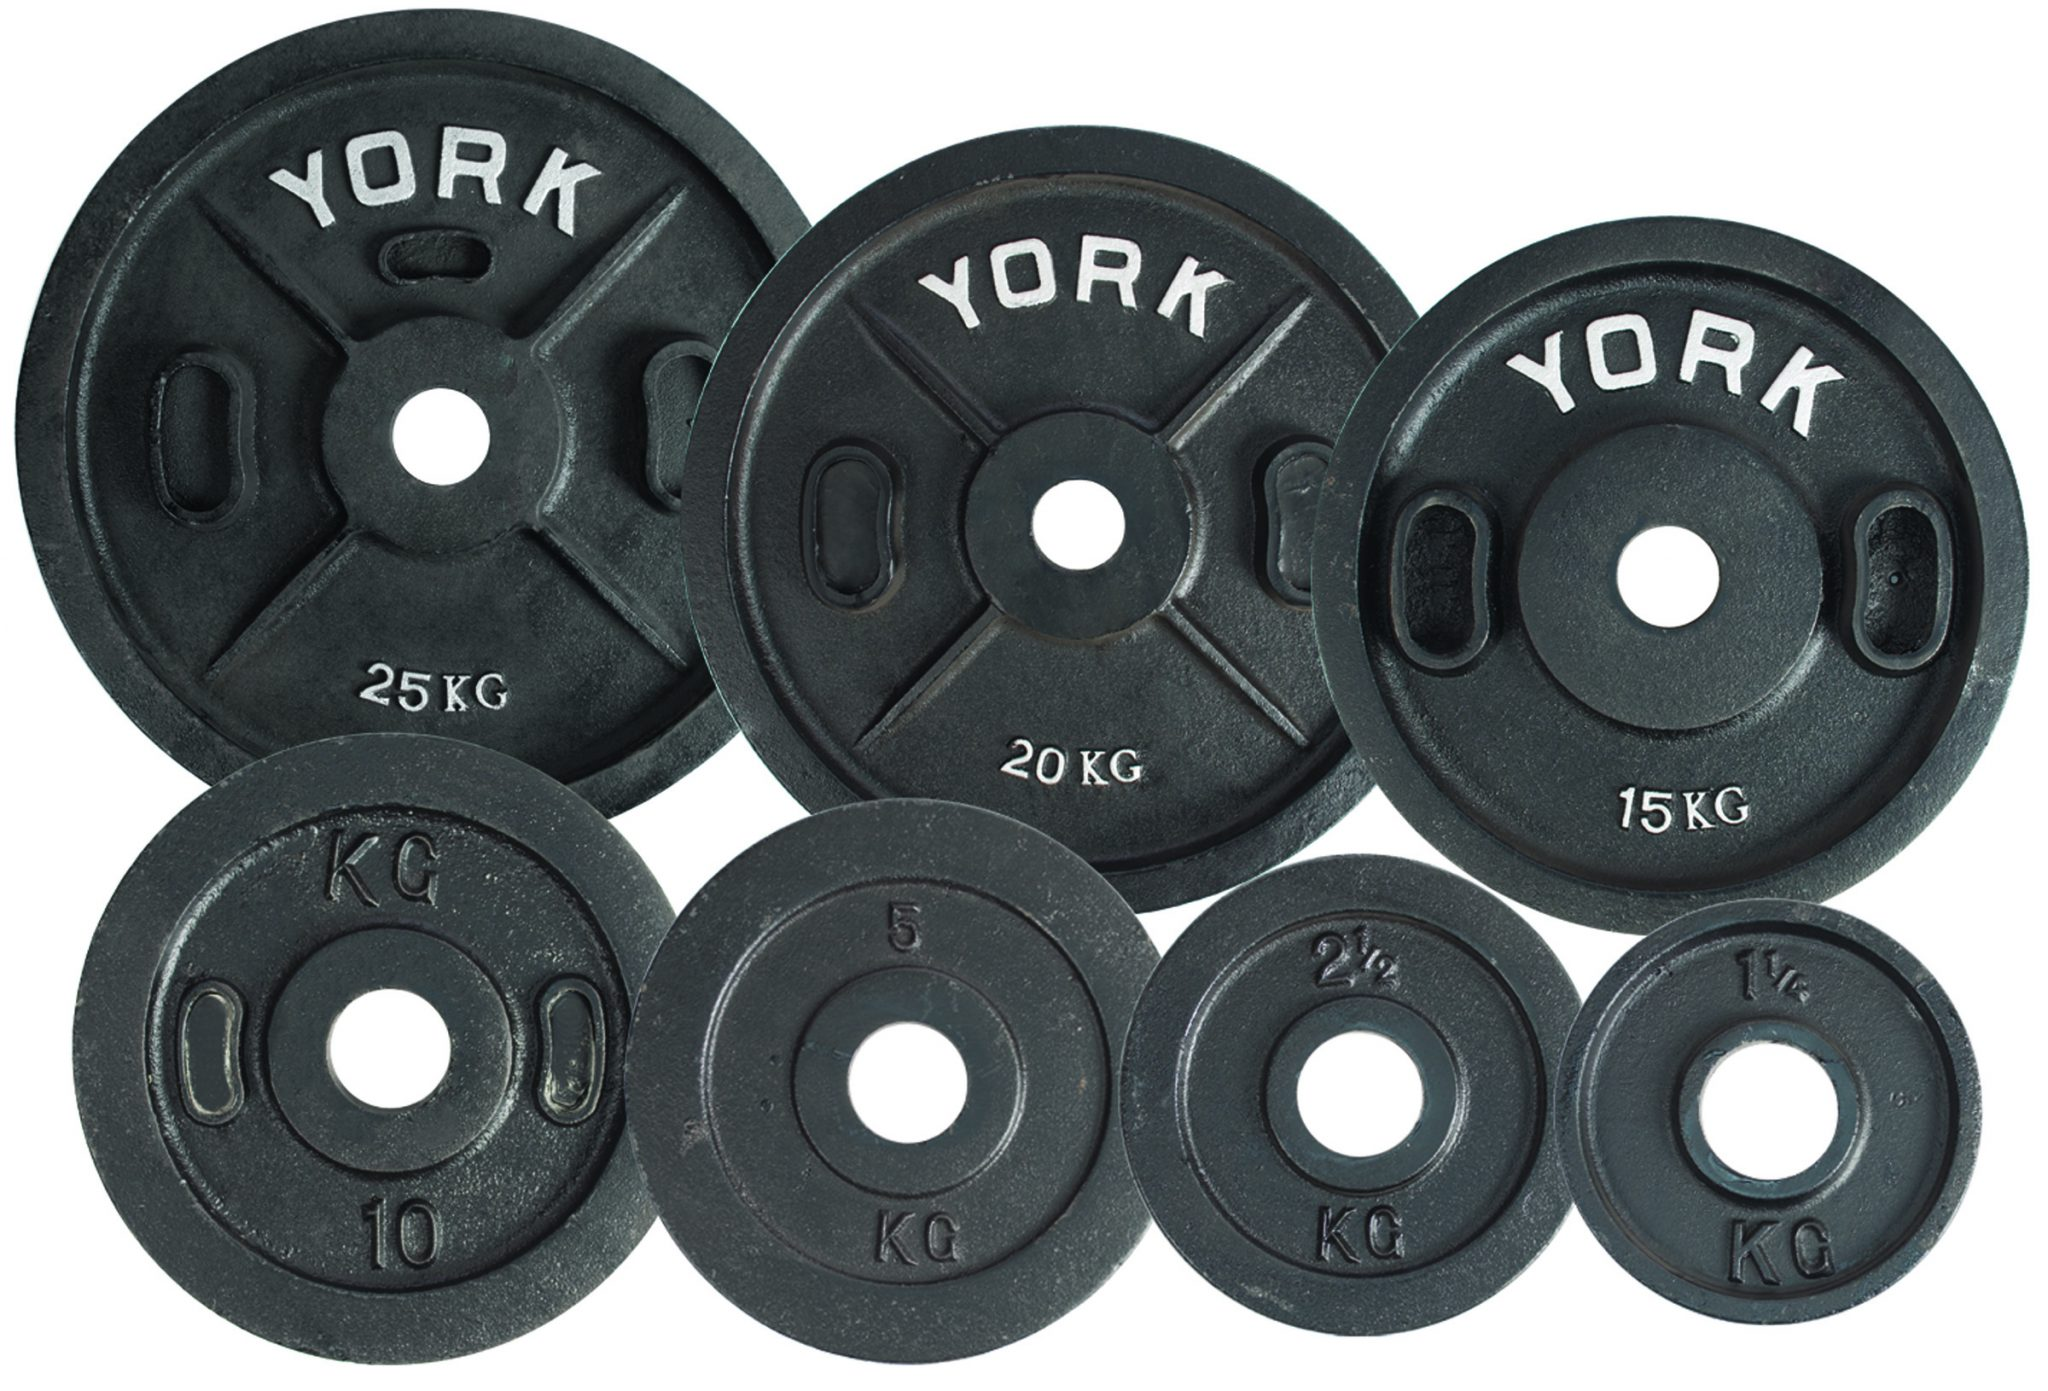 Must have items for your garage gym